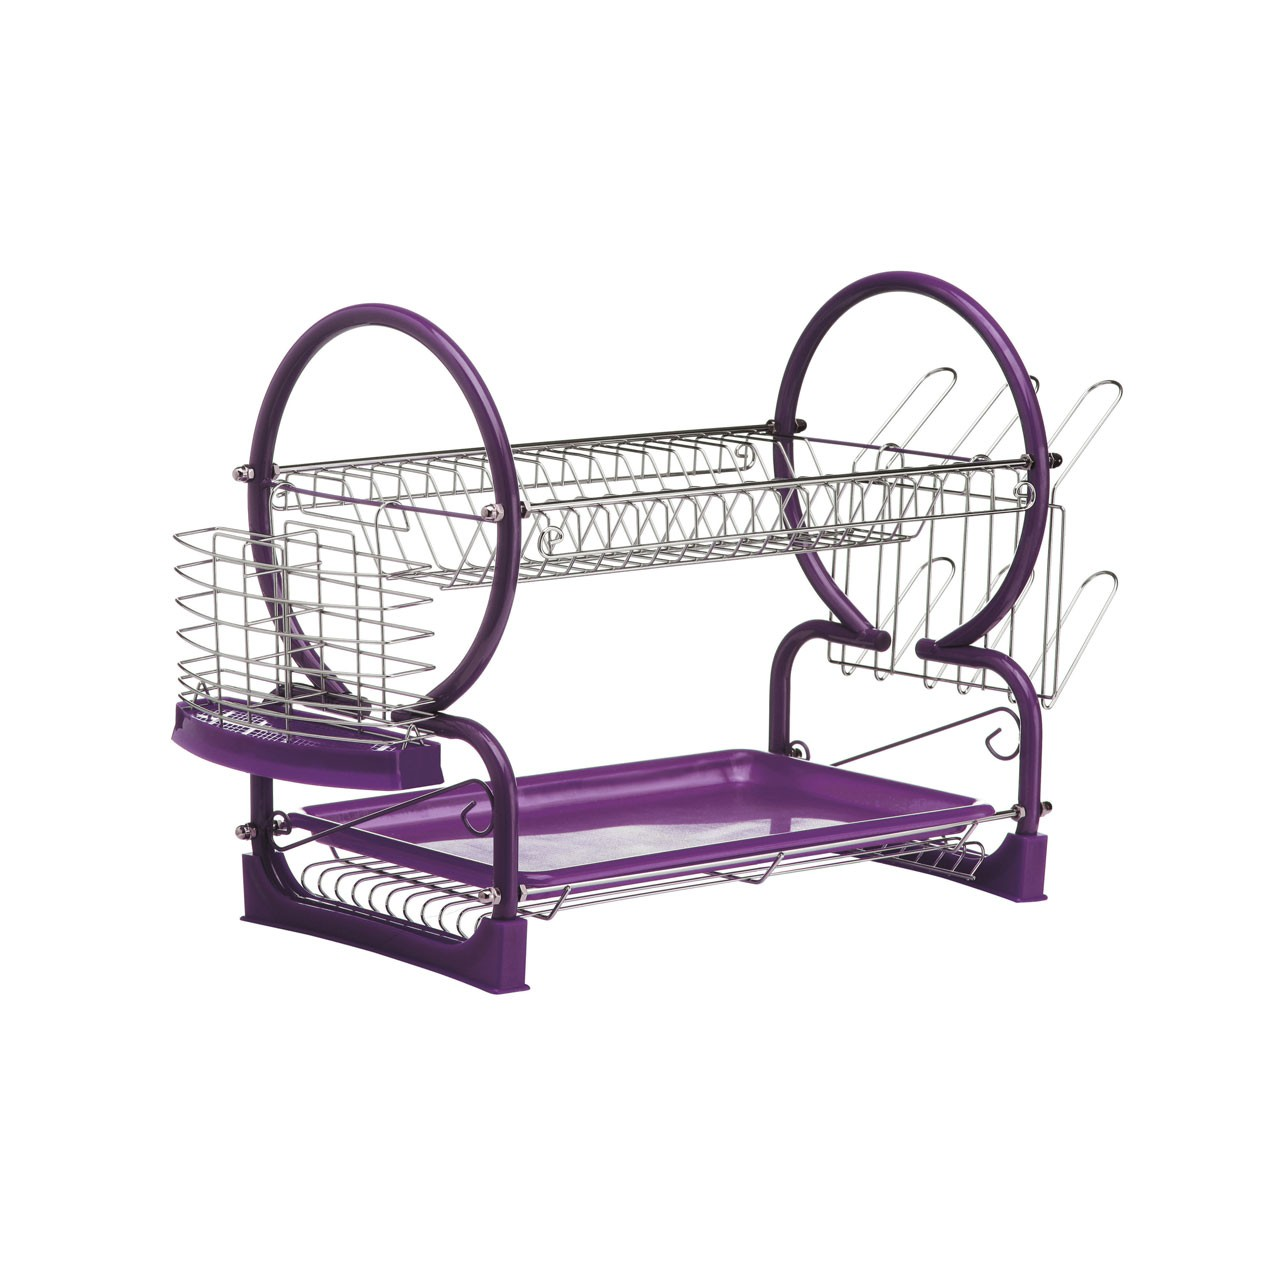 Prime Furnishing 2-Tier Dish Drainer - Purple